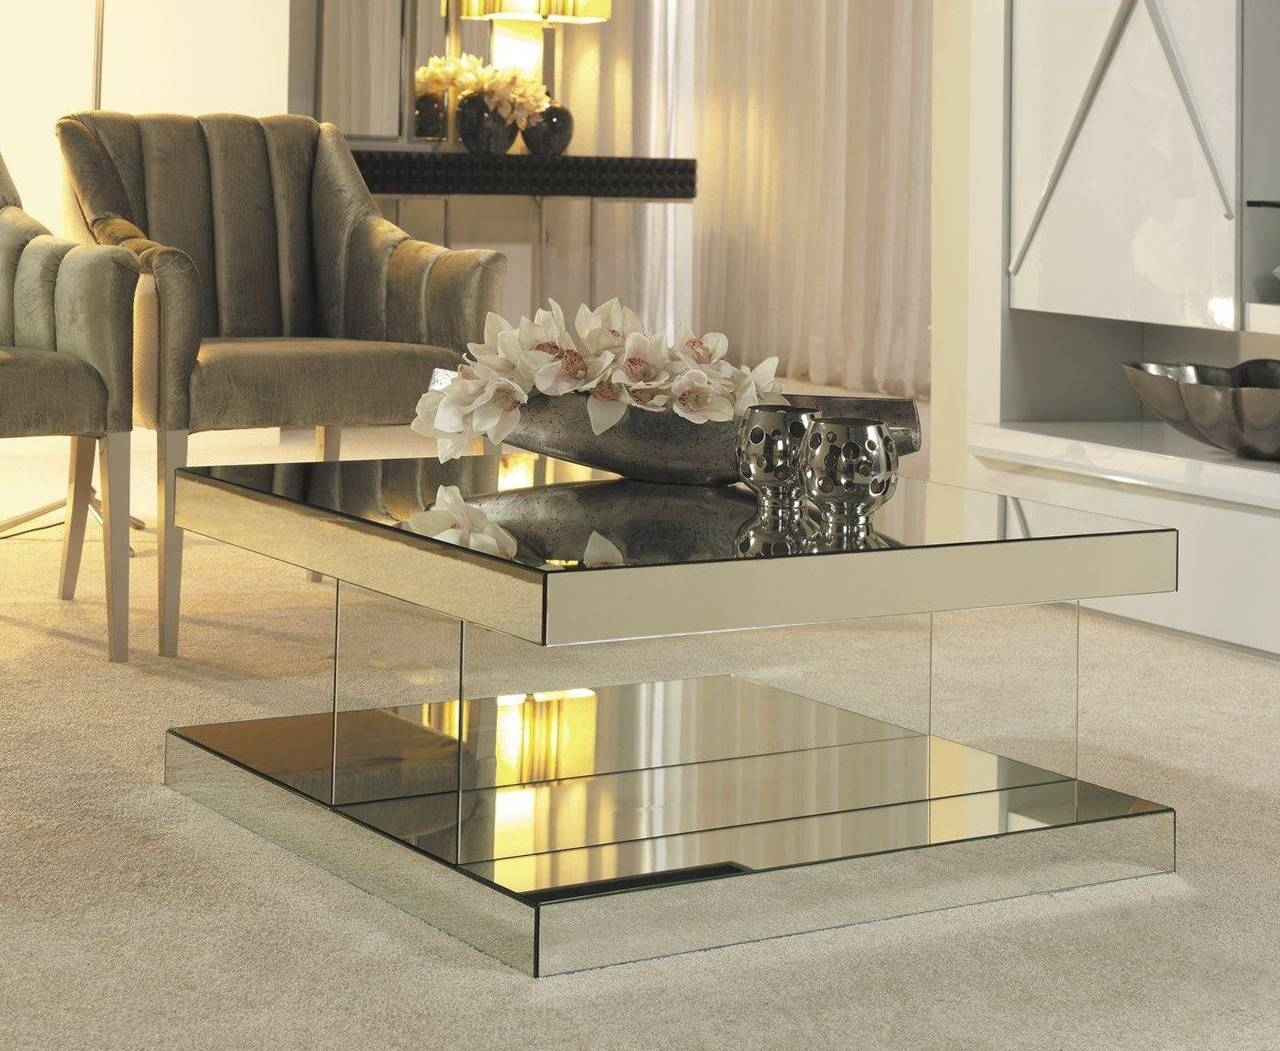 Luxurious Mirrored Coffee Table intended for Mirrored Coffee Tables (Image 18 of 30)